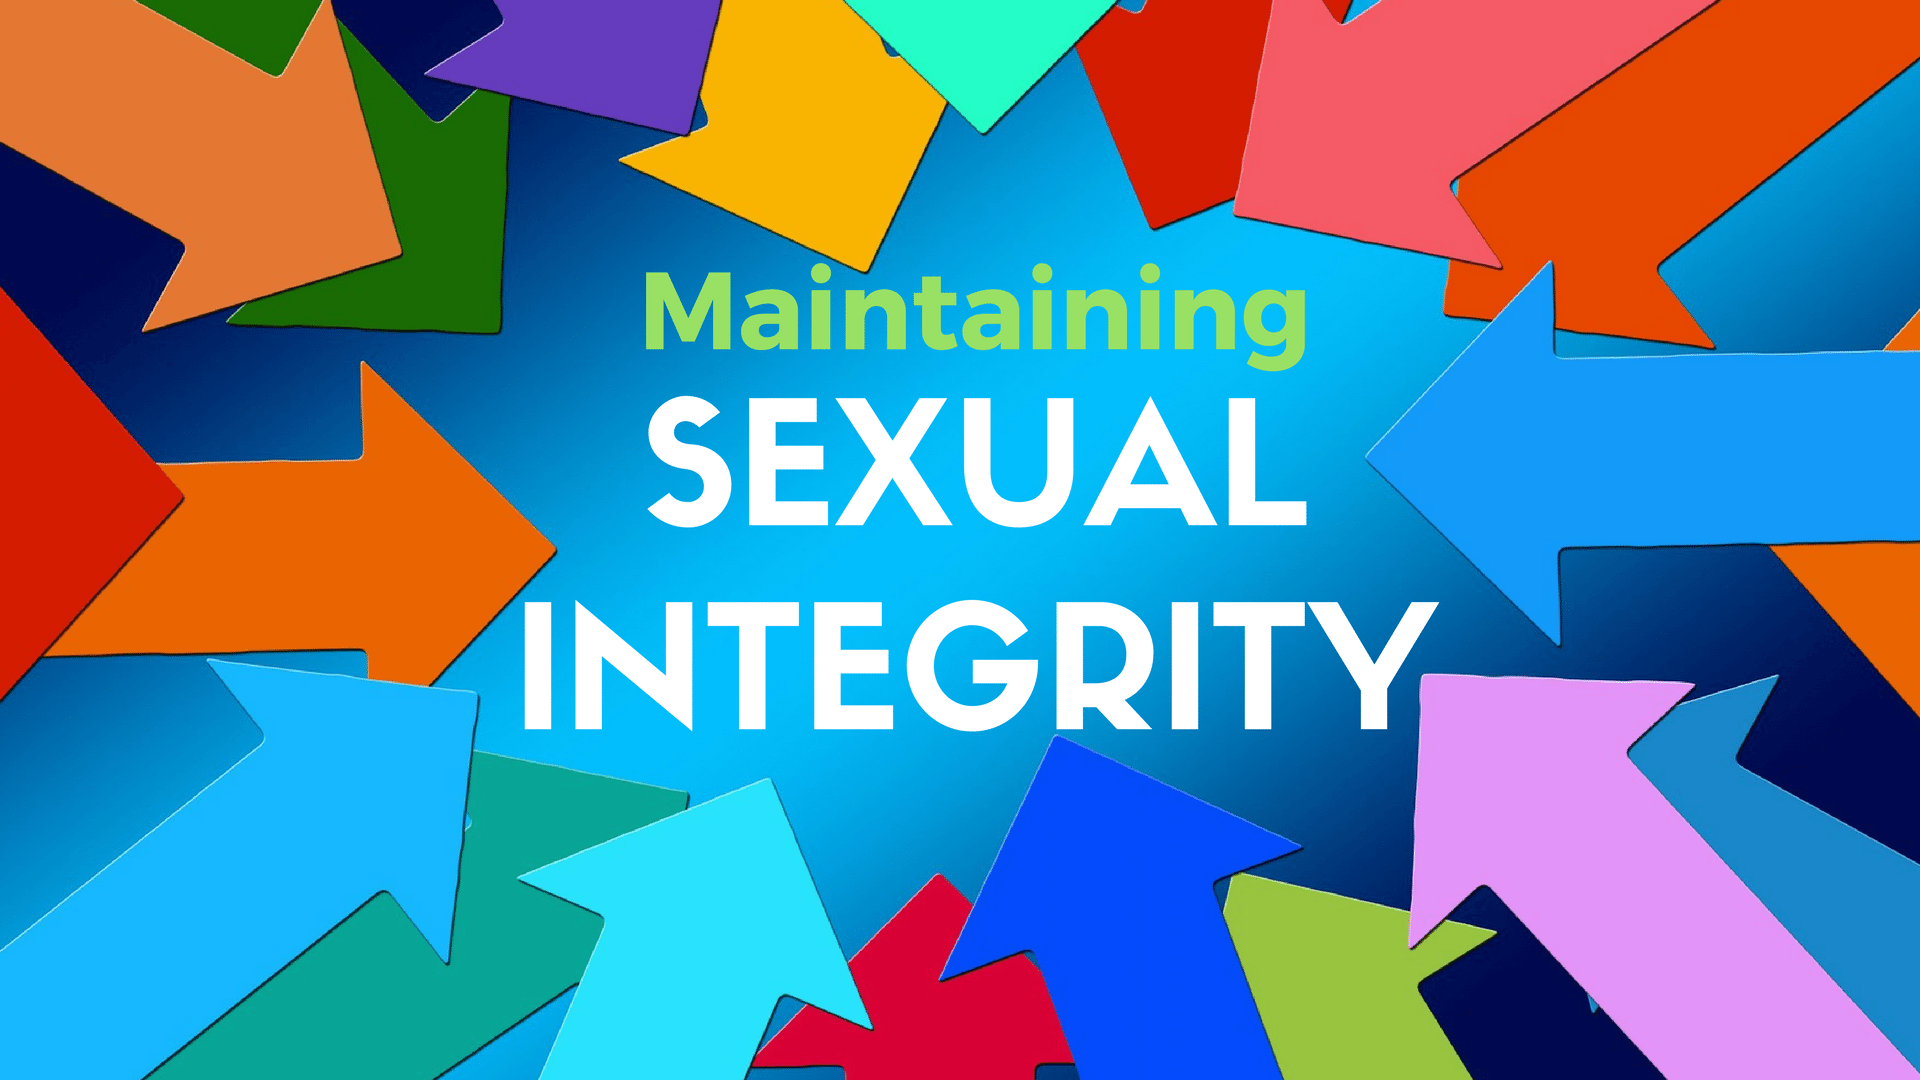 Sexual Integrity - Canva - Pixabay background